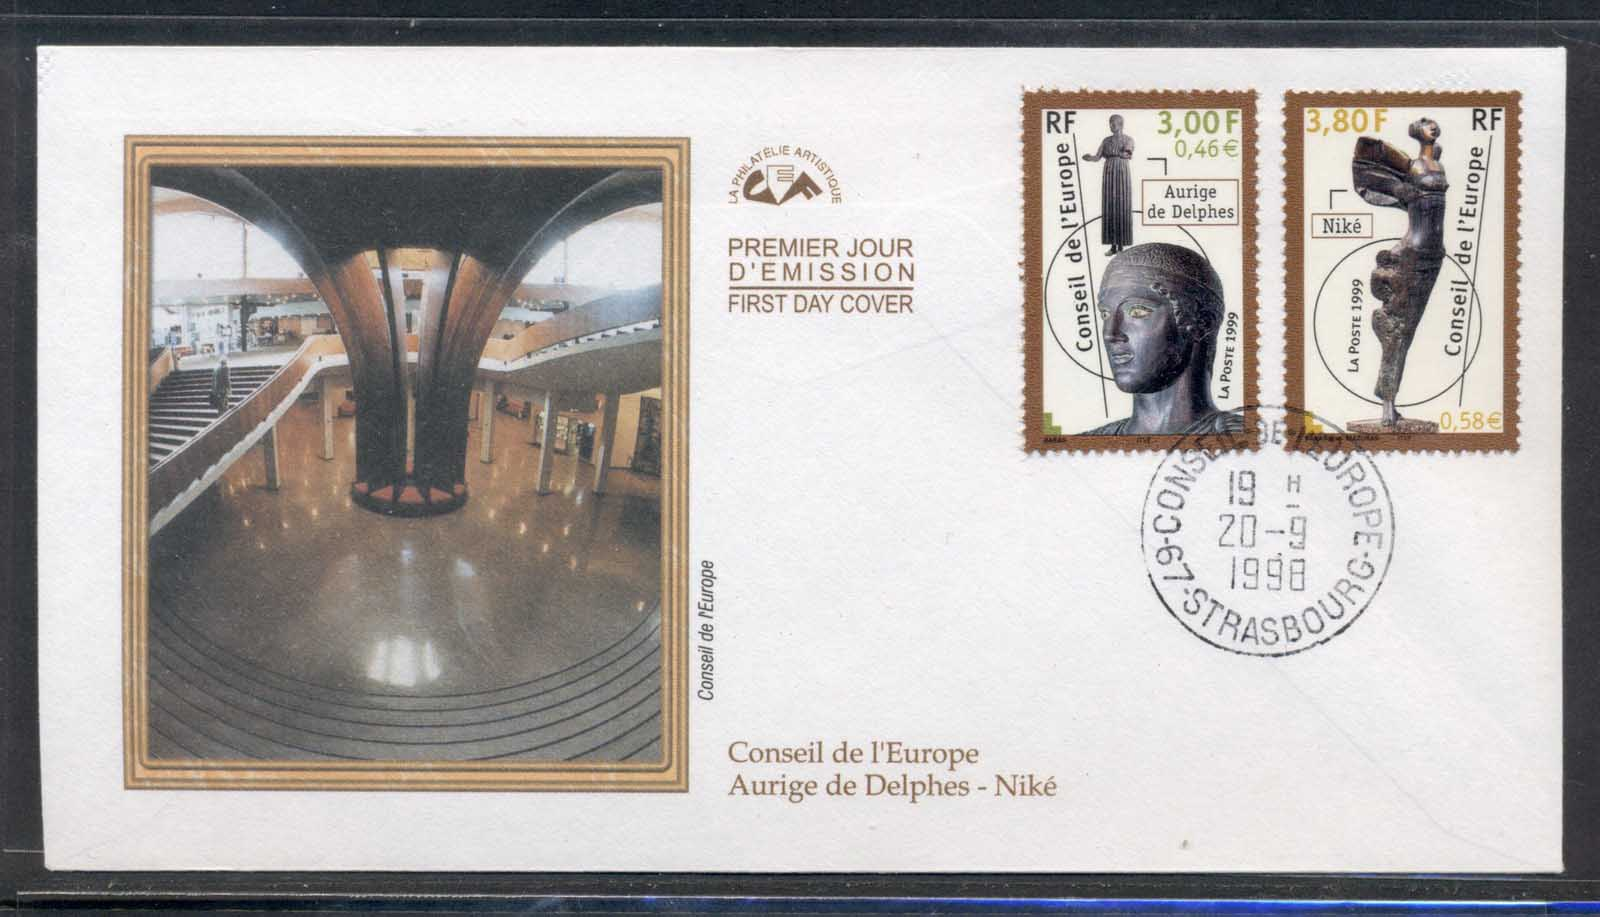 France 1998 Council of Europe FDC